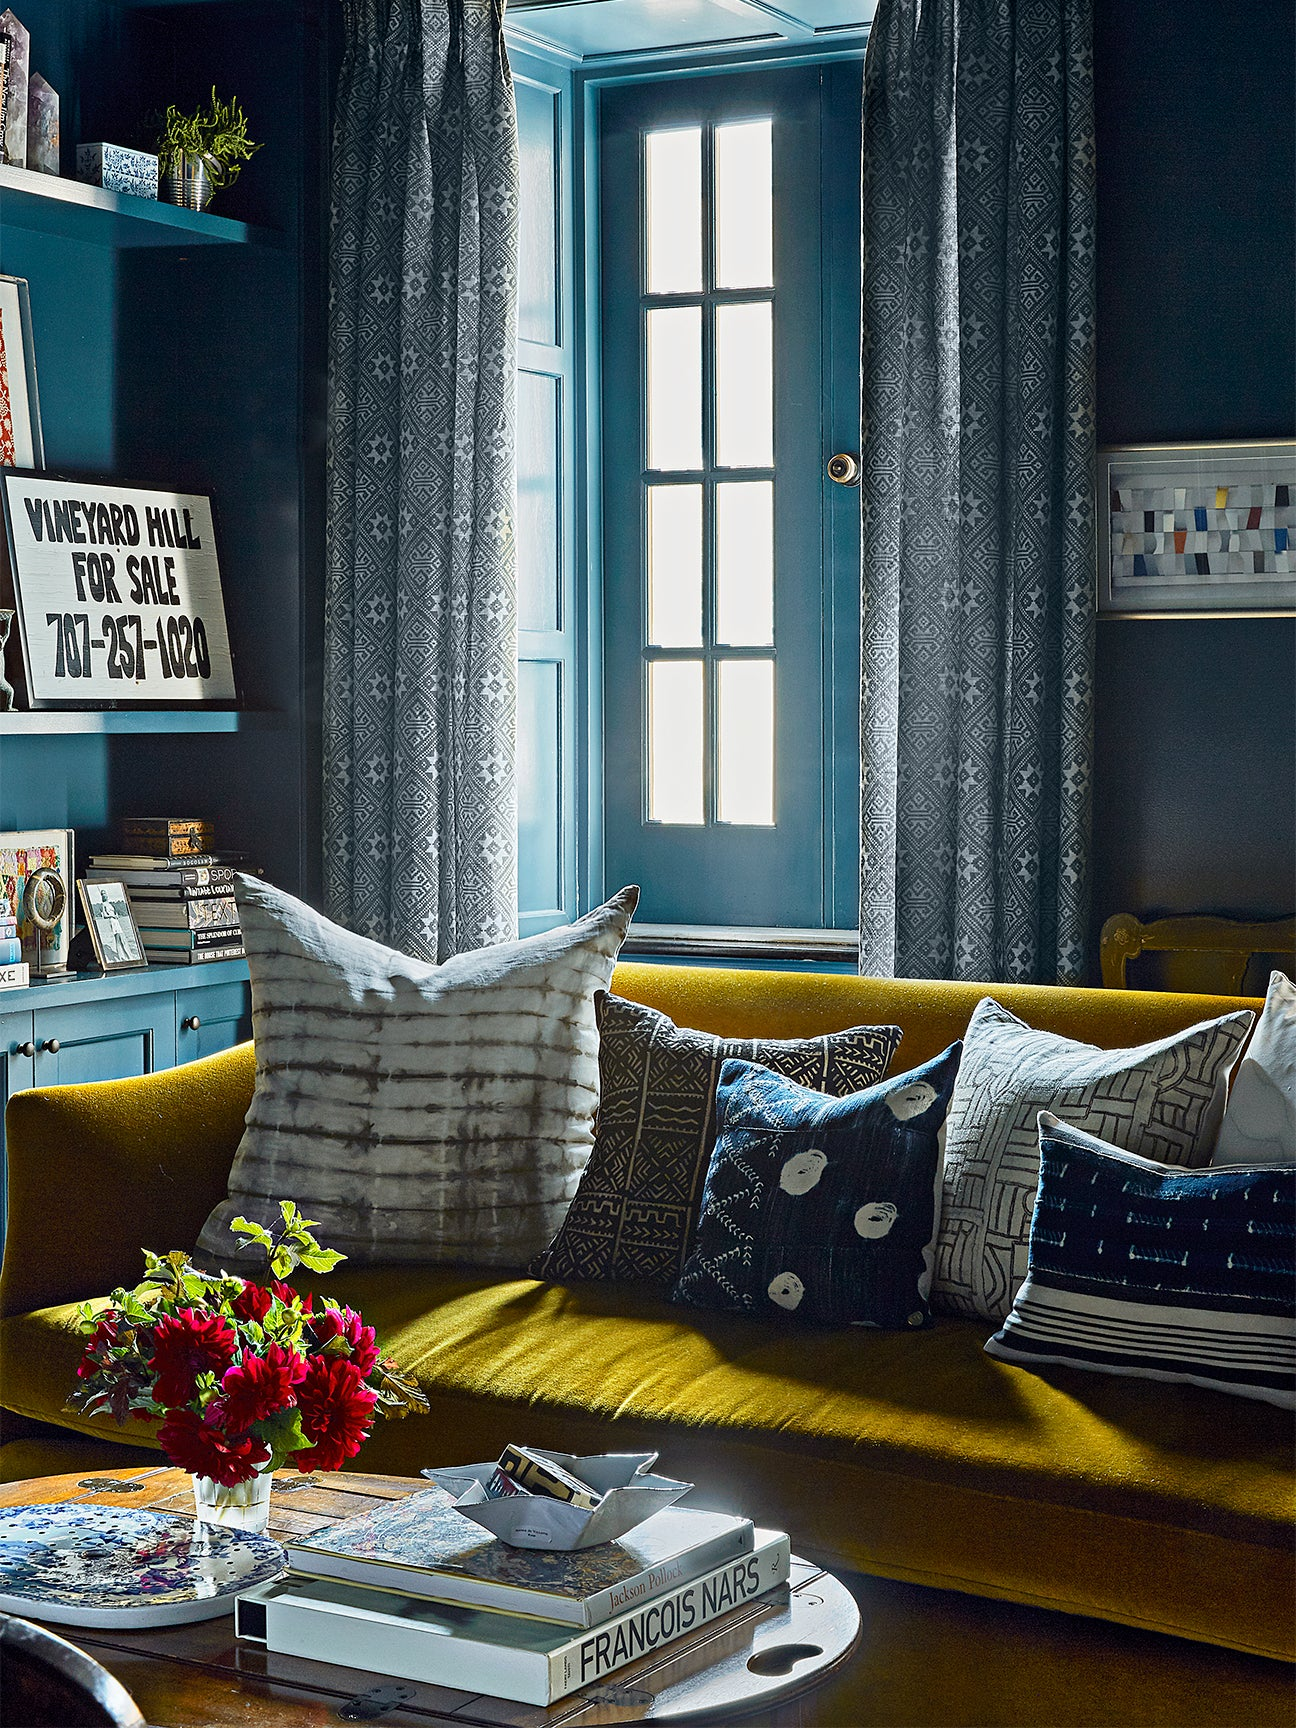 9 Small Living Room Decorating Ideas To Make It Feel Larger Than It Is